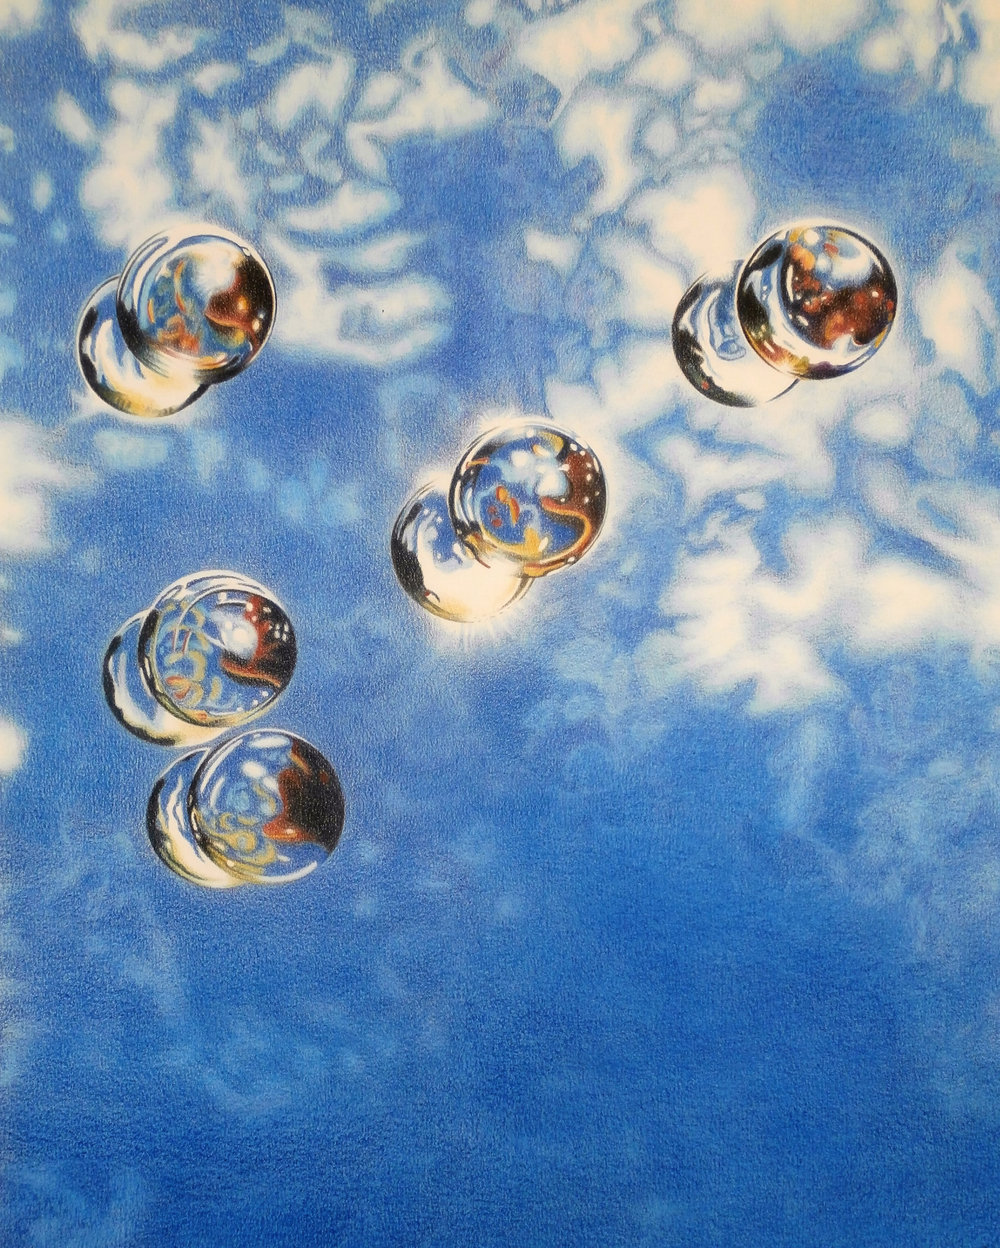 REFLECTIONS OF CLOUDS AND SPHERES